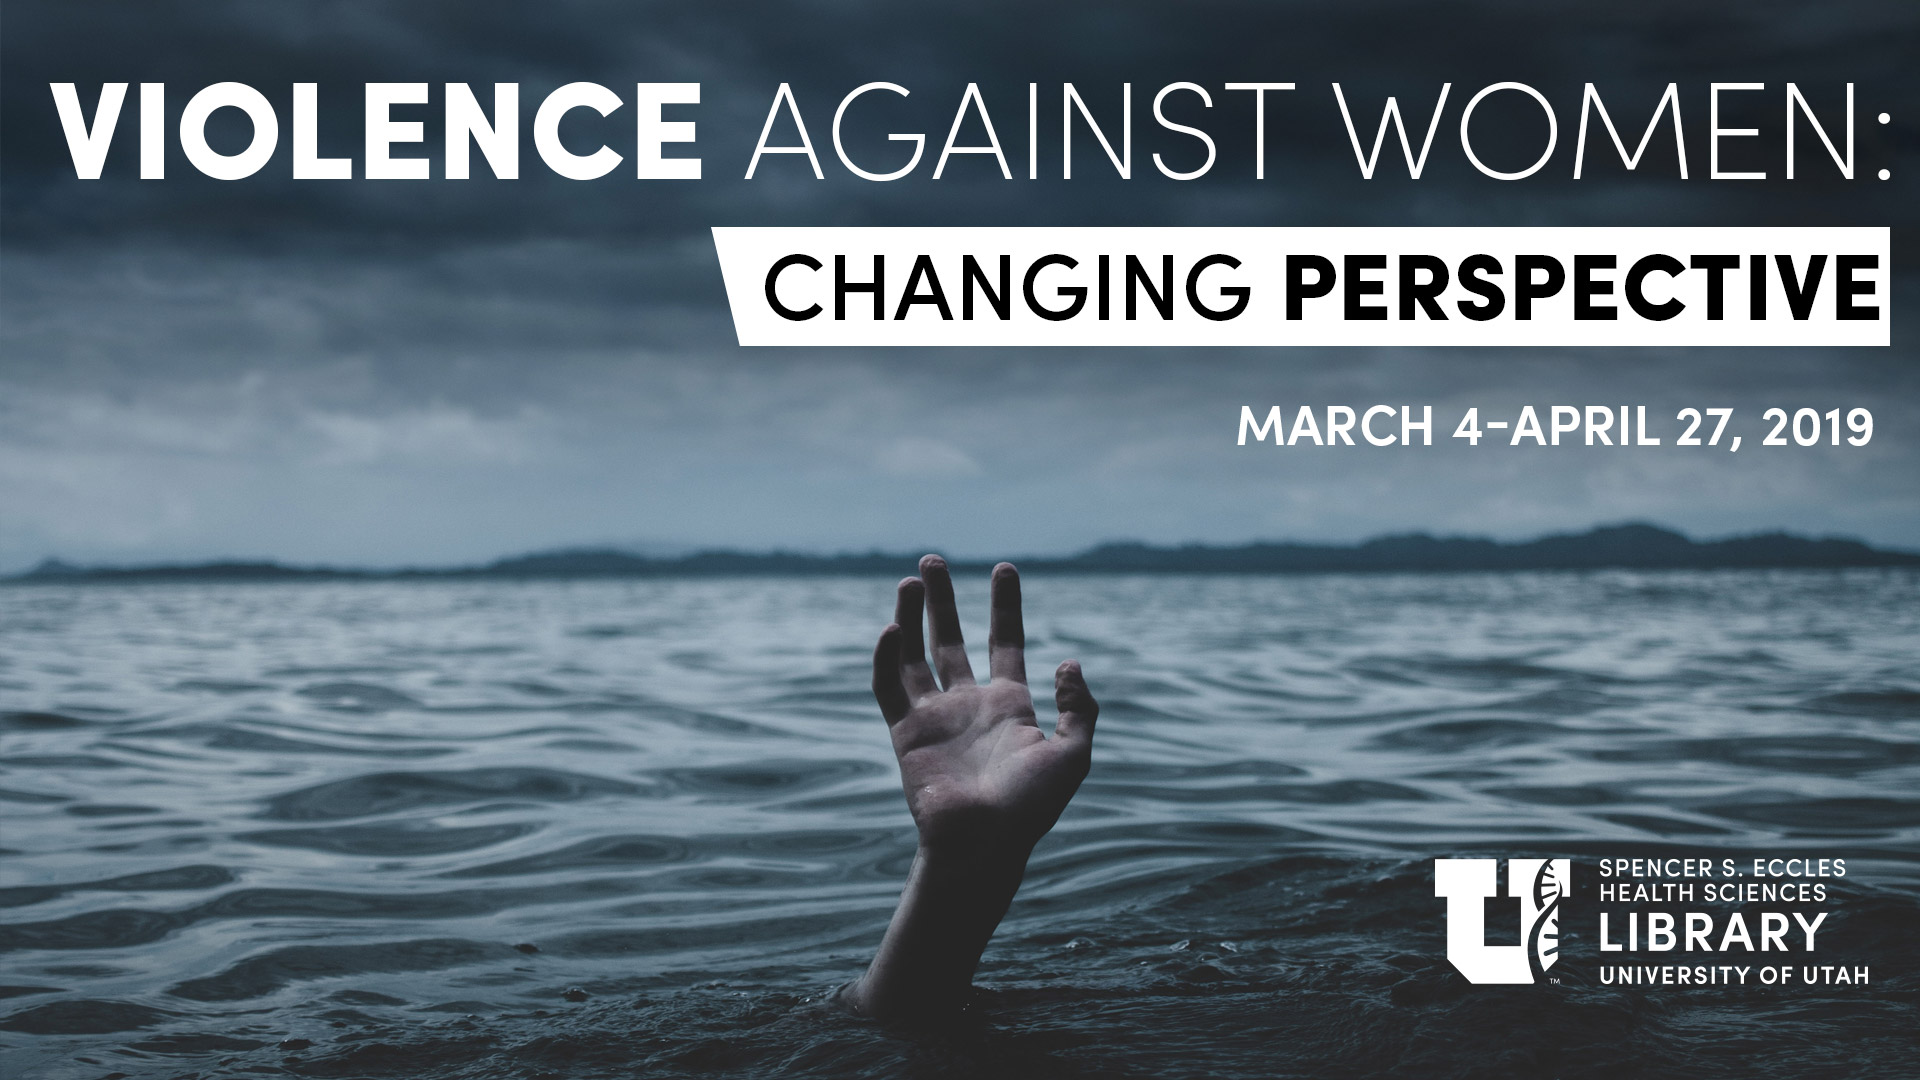 2019 Violence Against Women: Changing Perspective